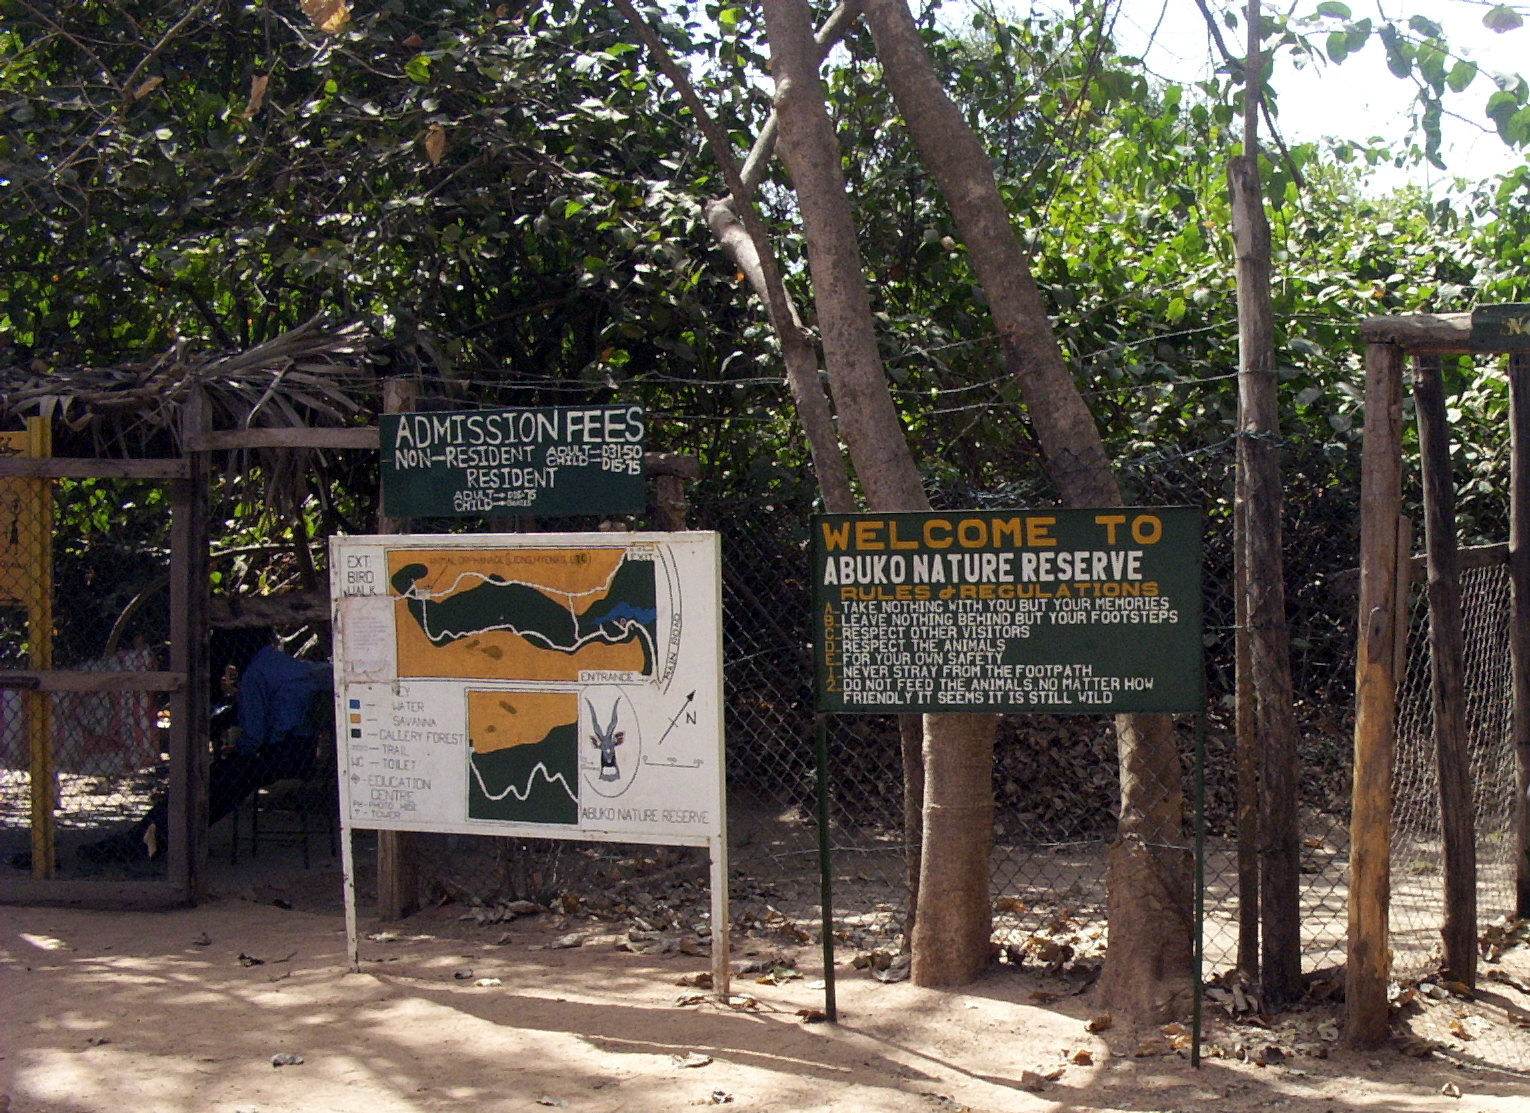 Abuko Nature Reserve in Abuko